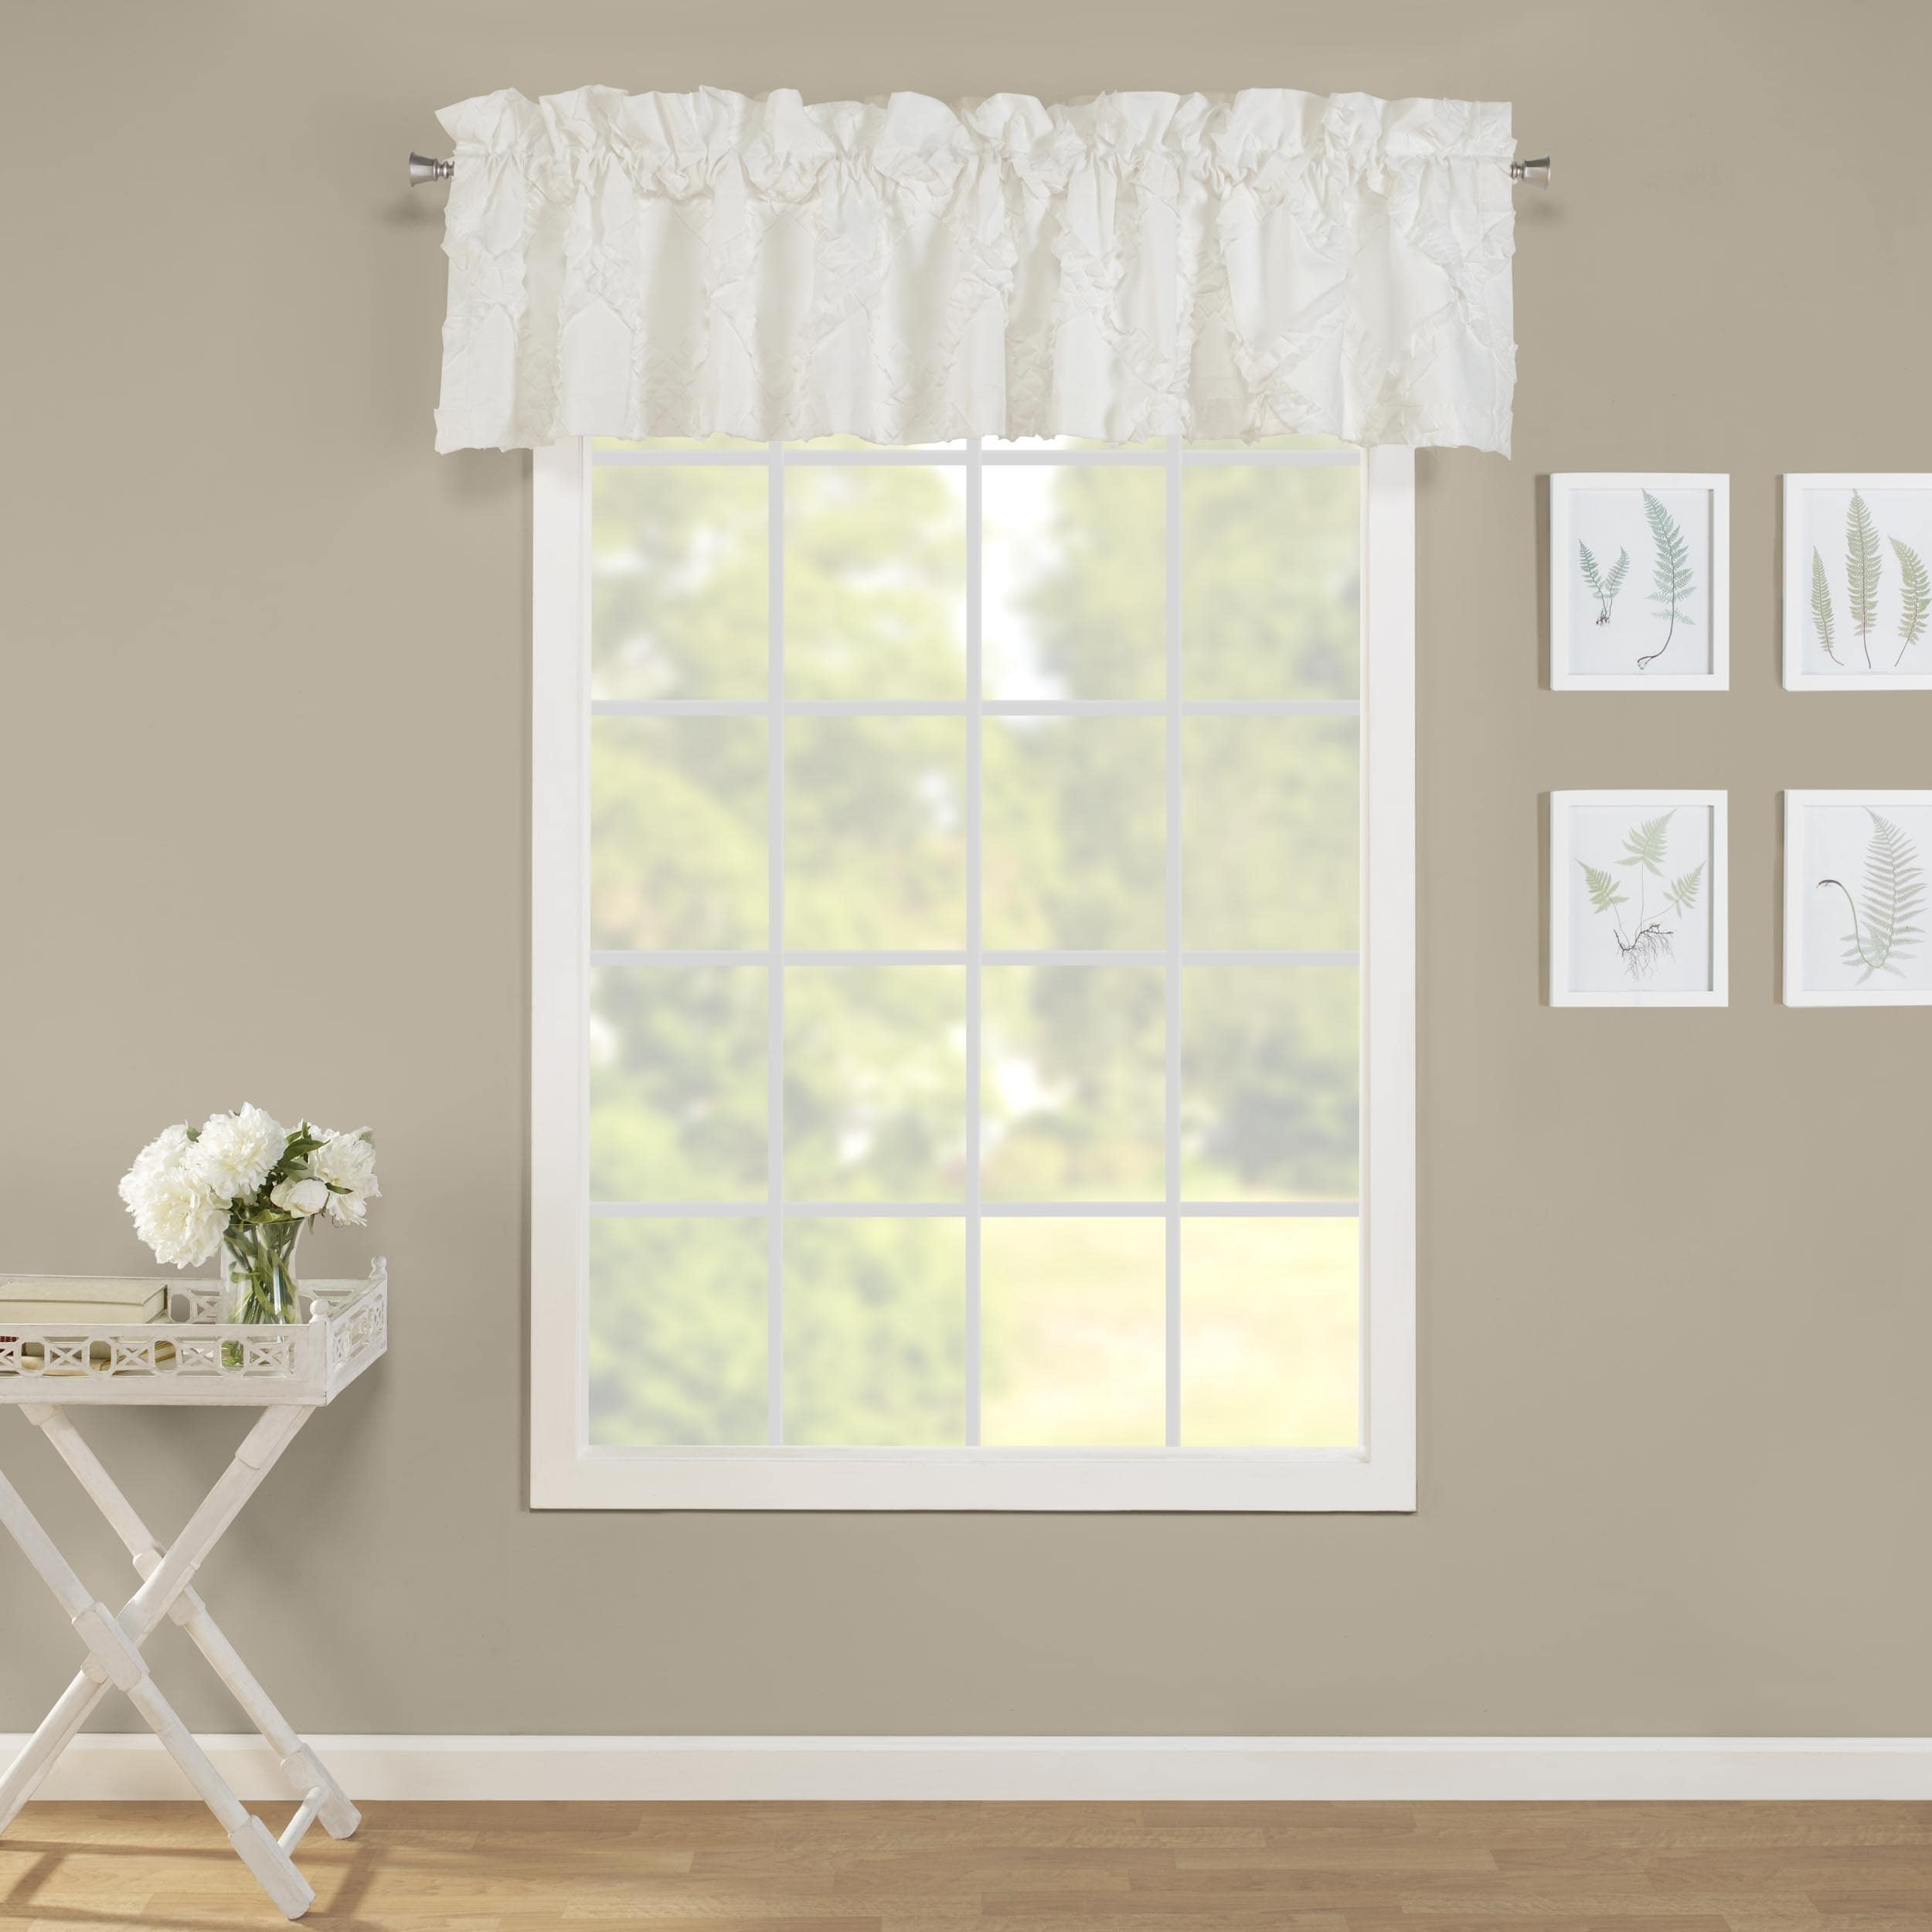 Laura Ashley Adelina Window Valance Free Shipping On Orders Over 45 19803876